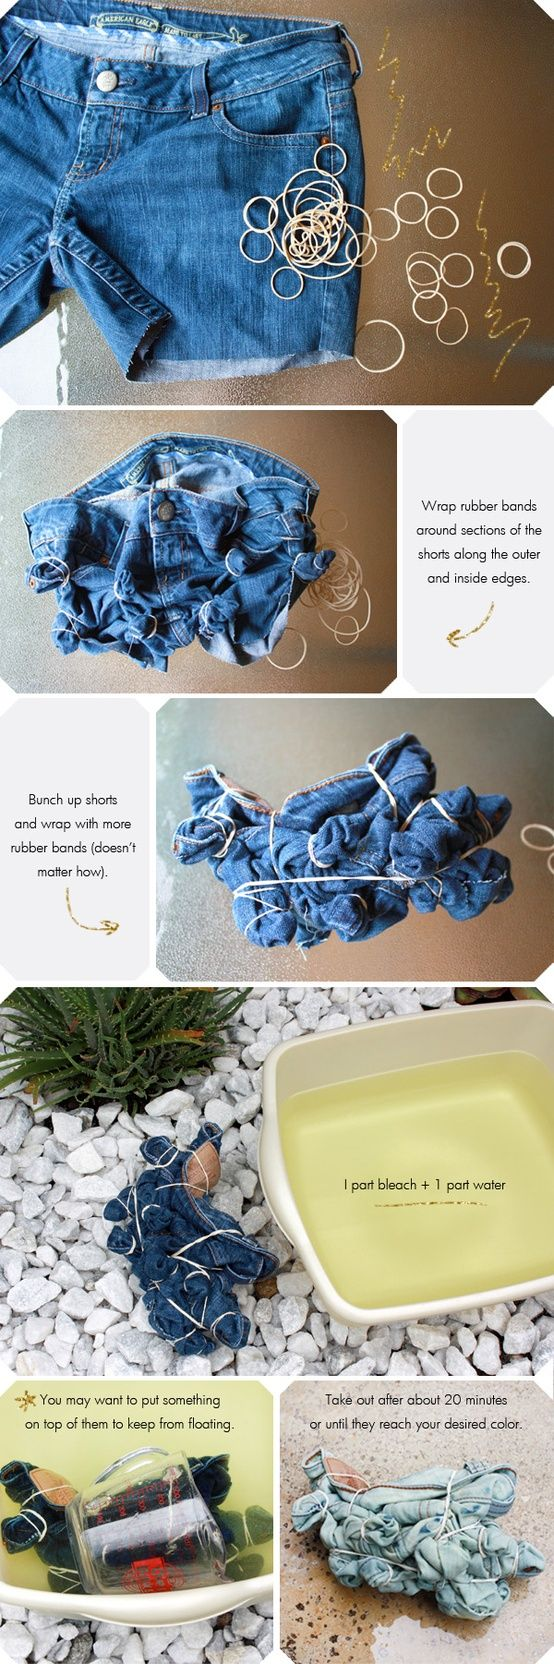 How to bleach your shorts!